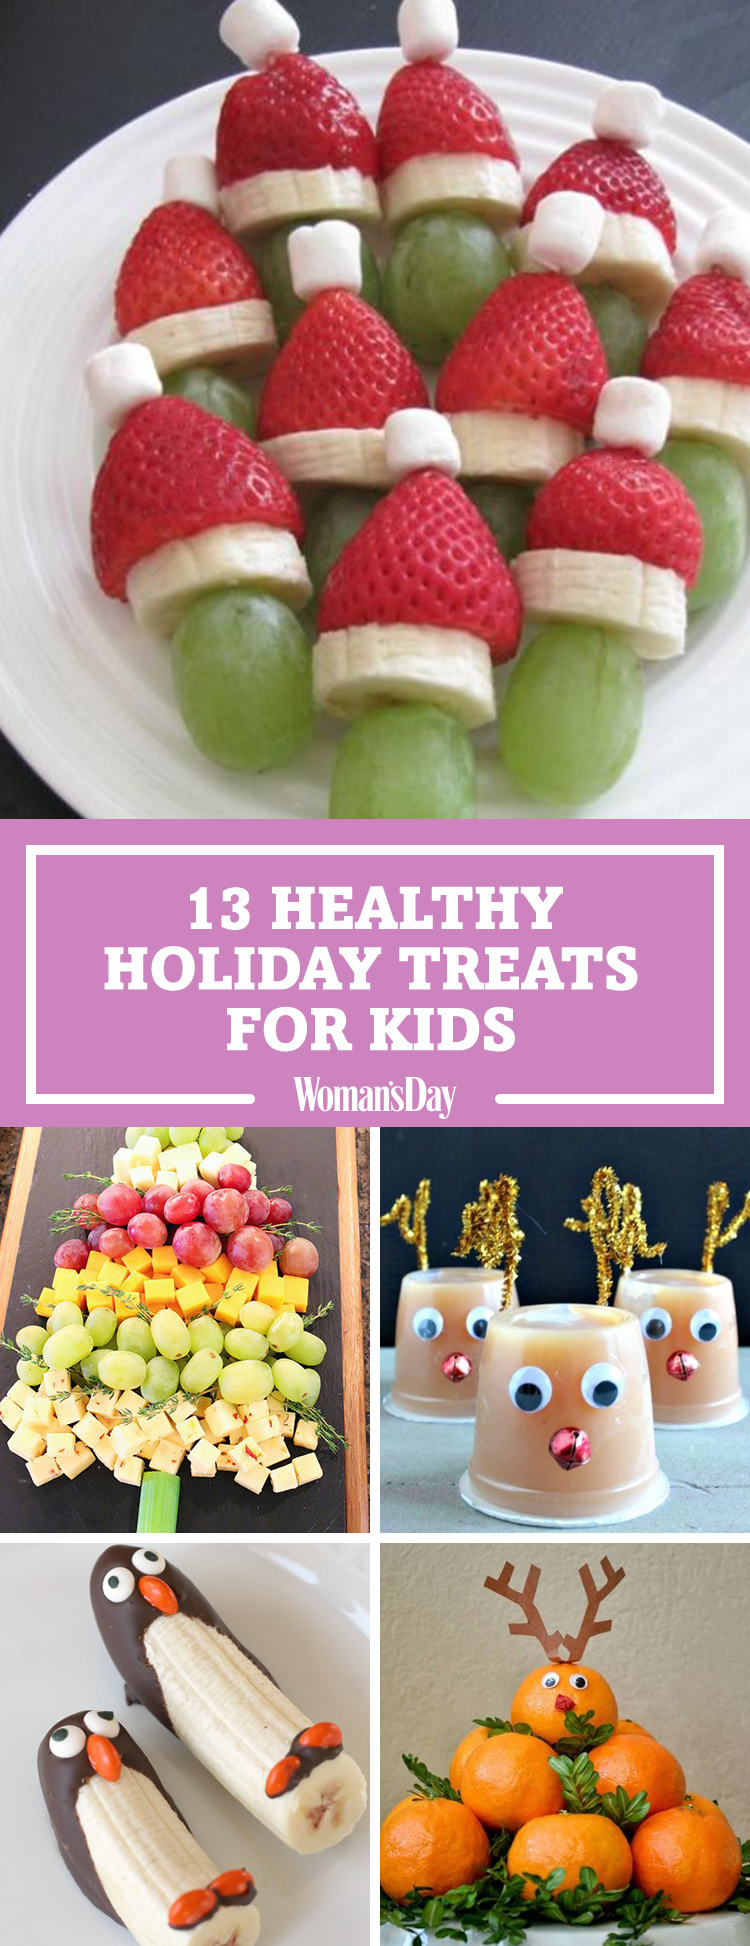 Healthy Christmas Appetizers Pinterest 20 Healthy Christmas Snacks For Kids Easy Ideas For Holiday Snack